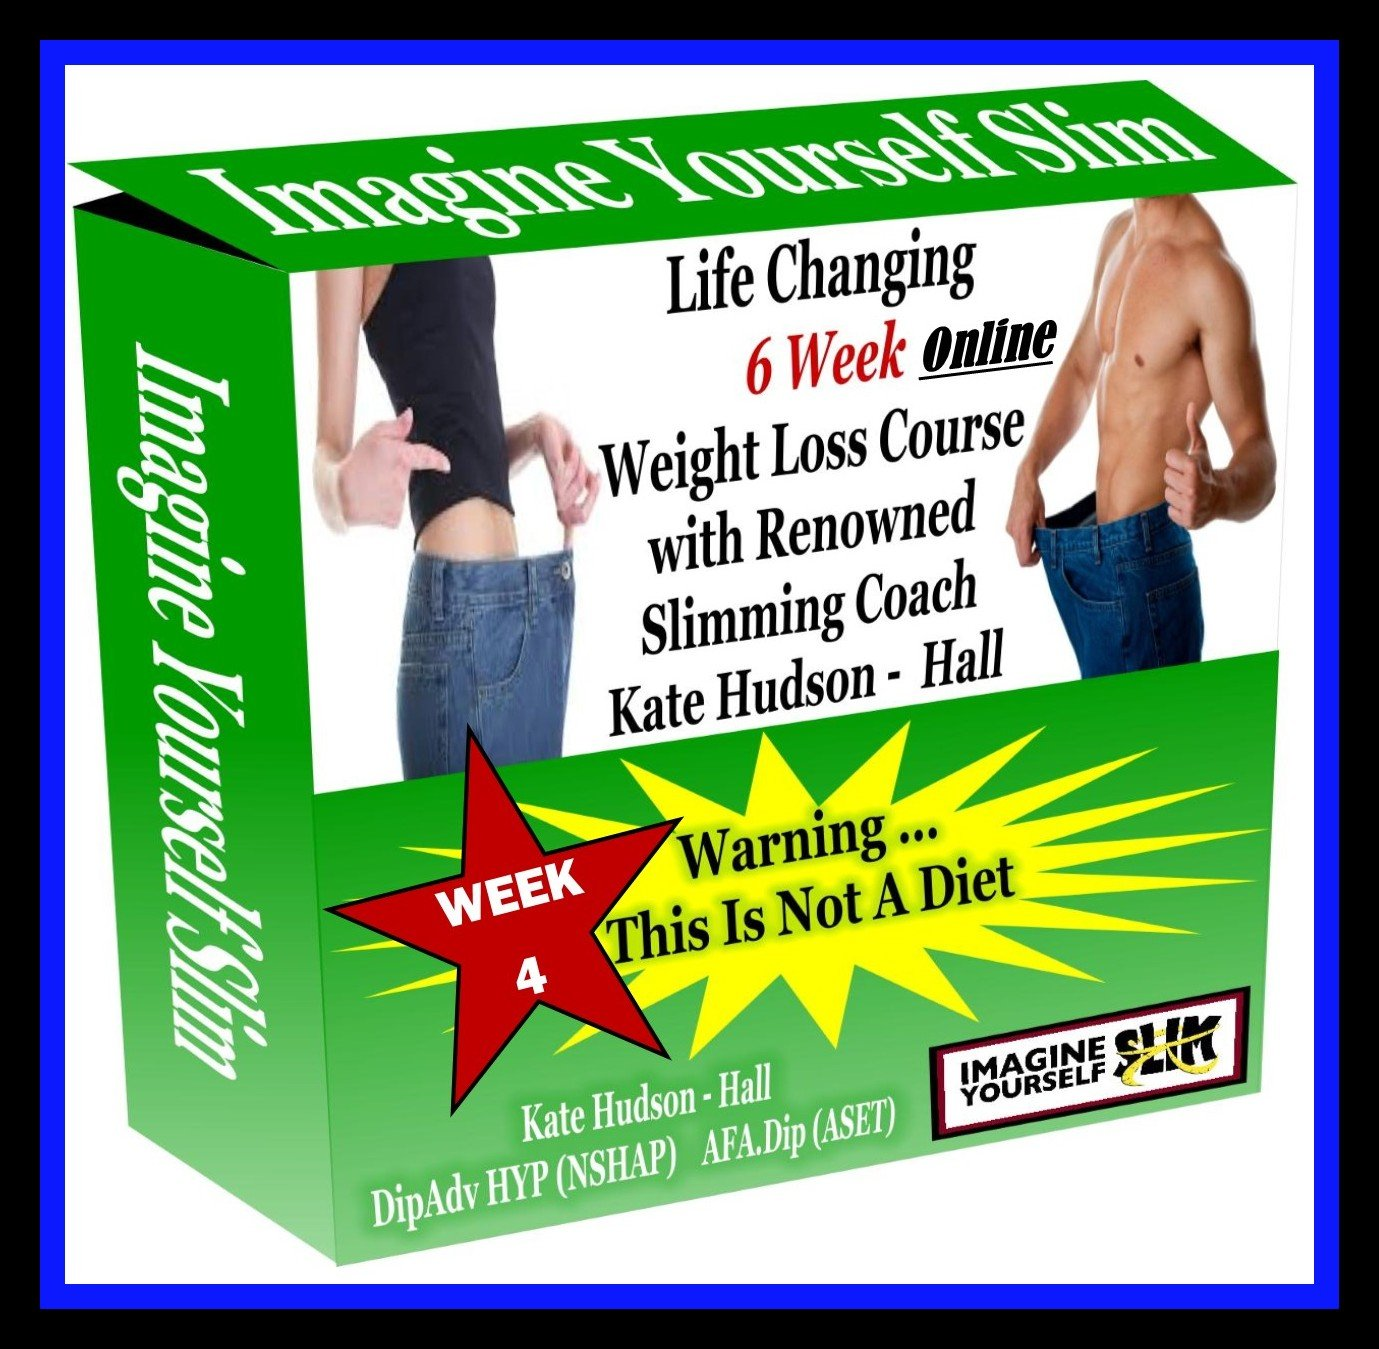 Weight loss course week 4